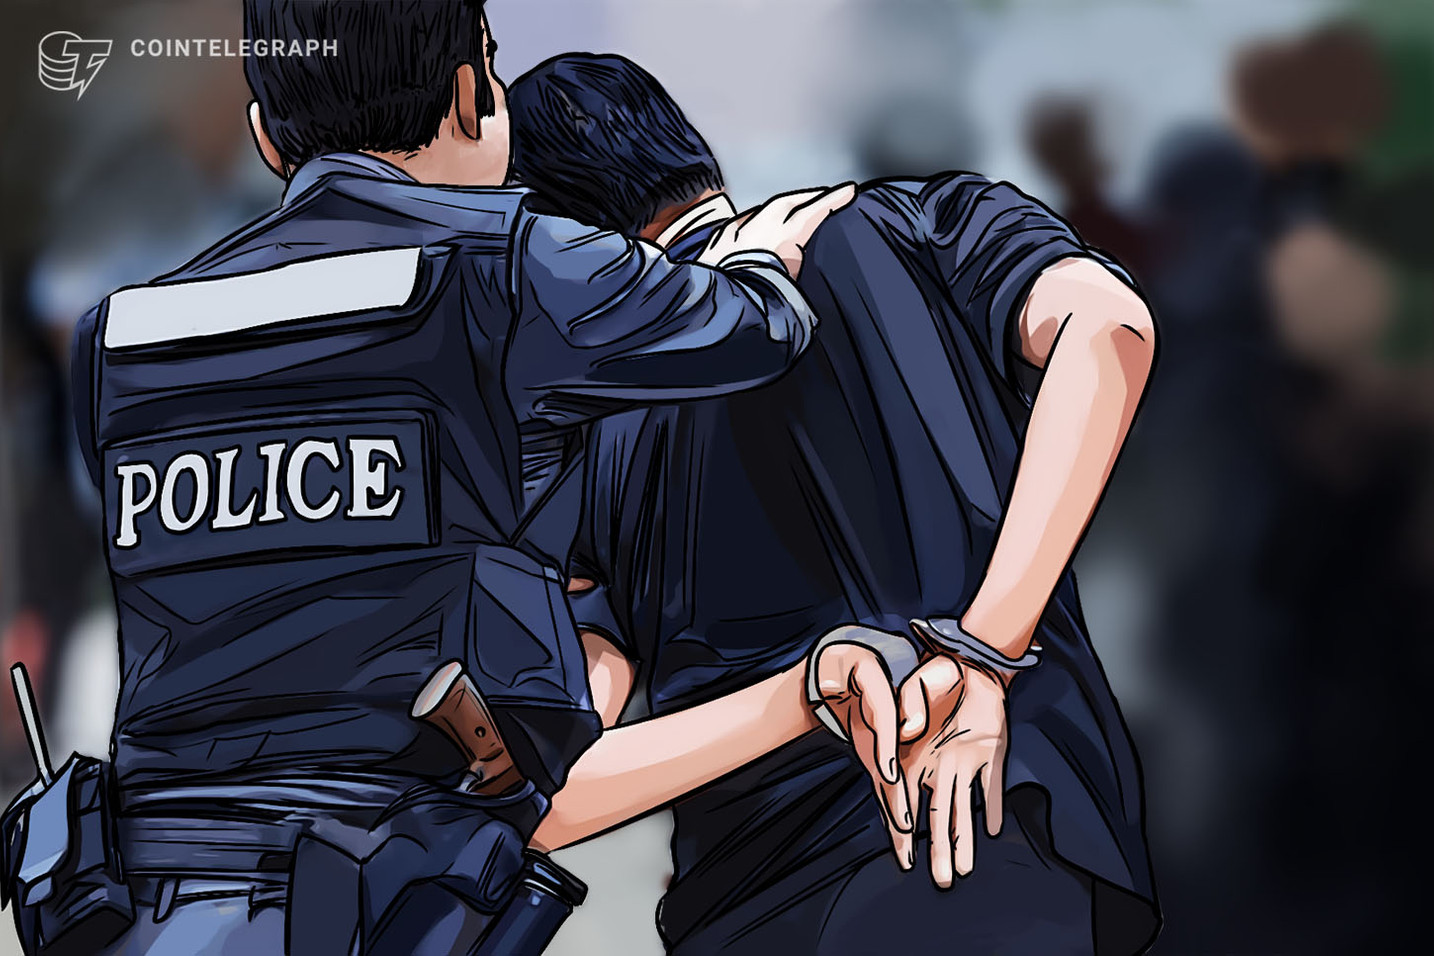 Head of Crypto Capital Arrested in Connection With Money Laundering